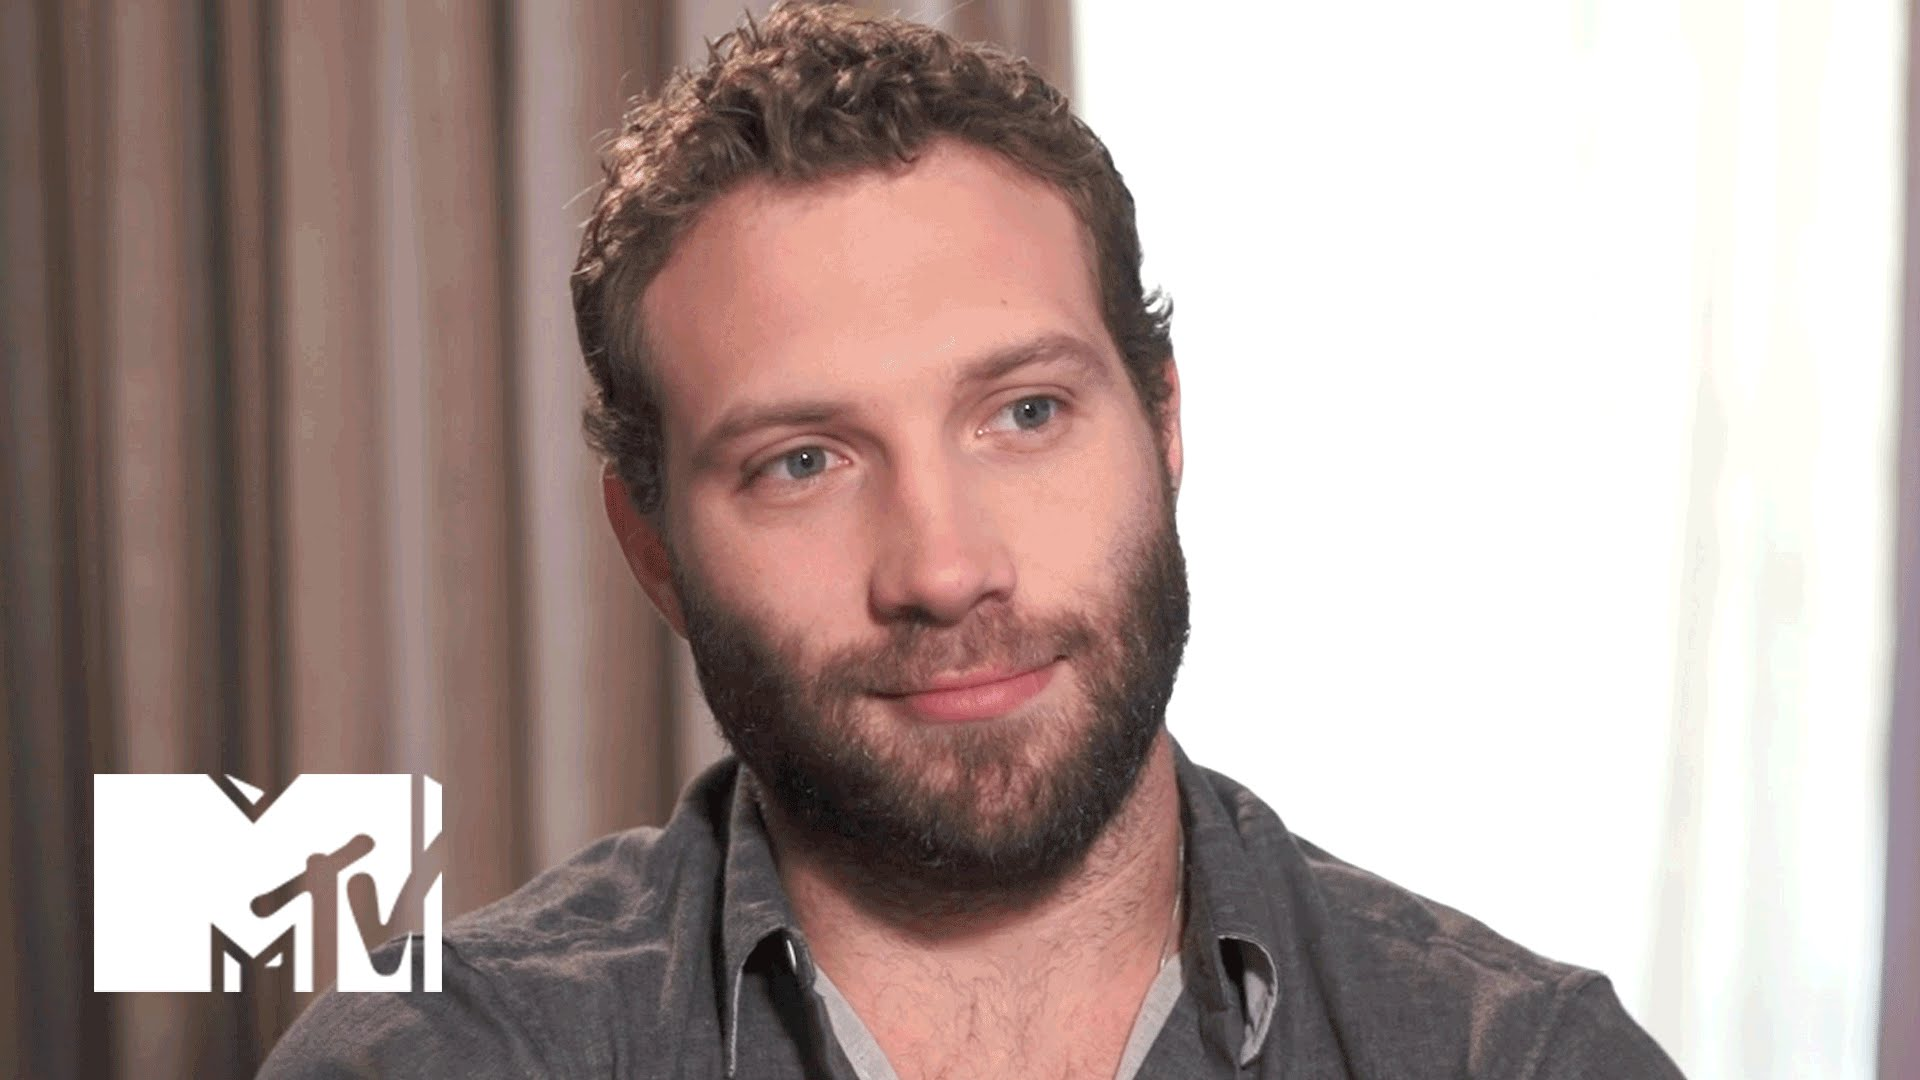 Jai Courtney makes eyebrow piercings actually look cool. [Summit Entertainment via